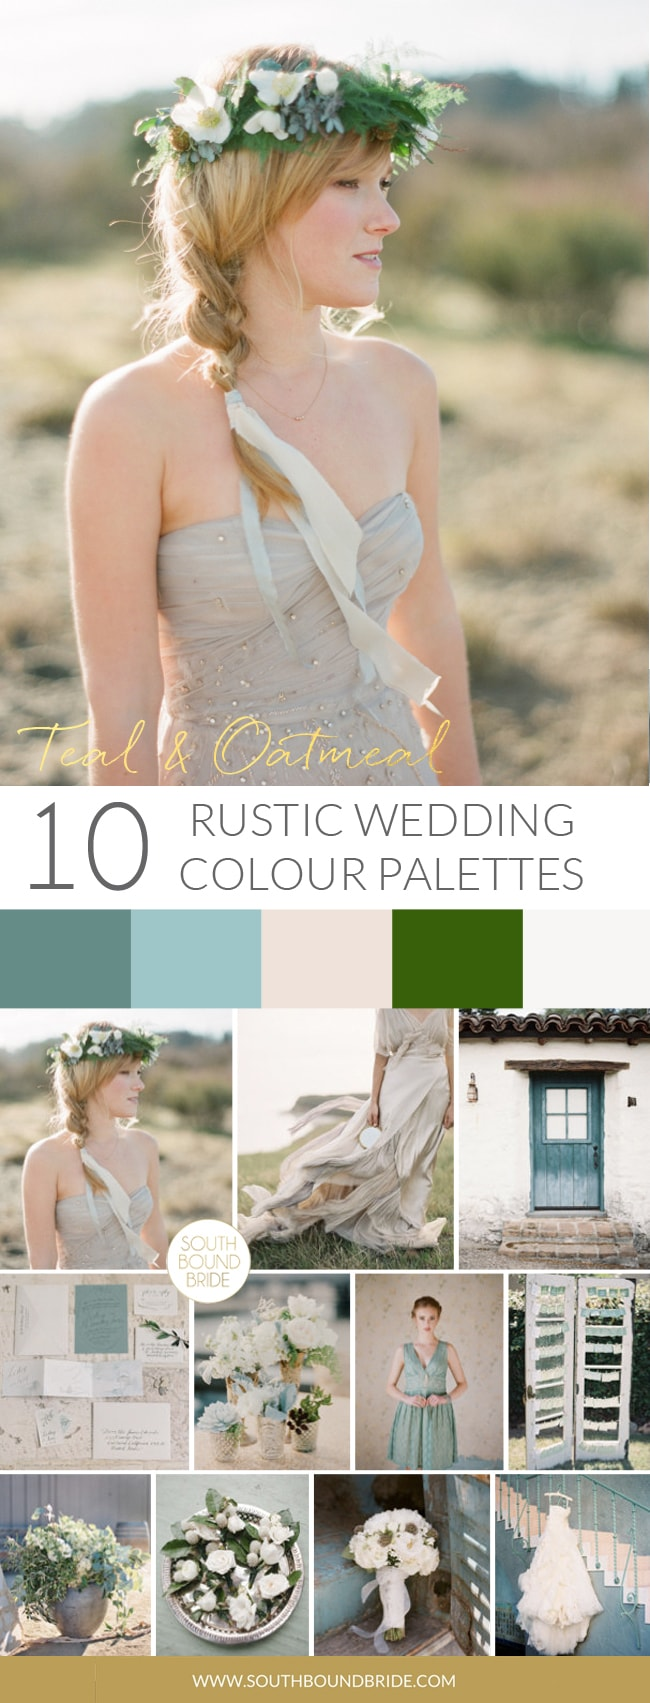 Teal & Oatmeal Rustic Wedding Palette